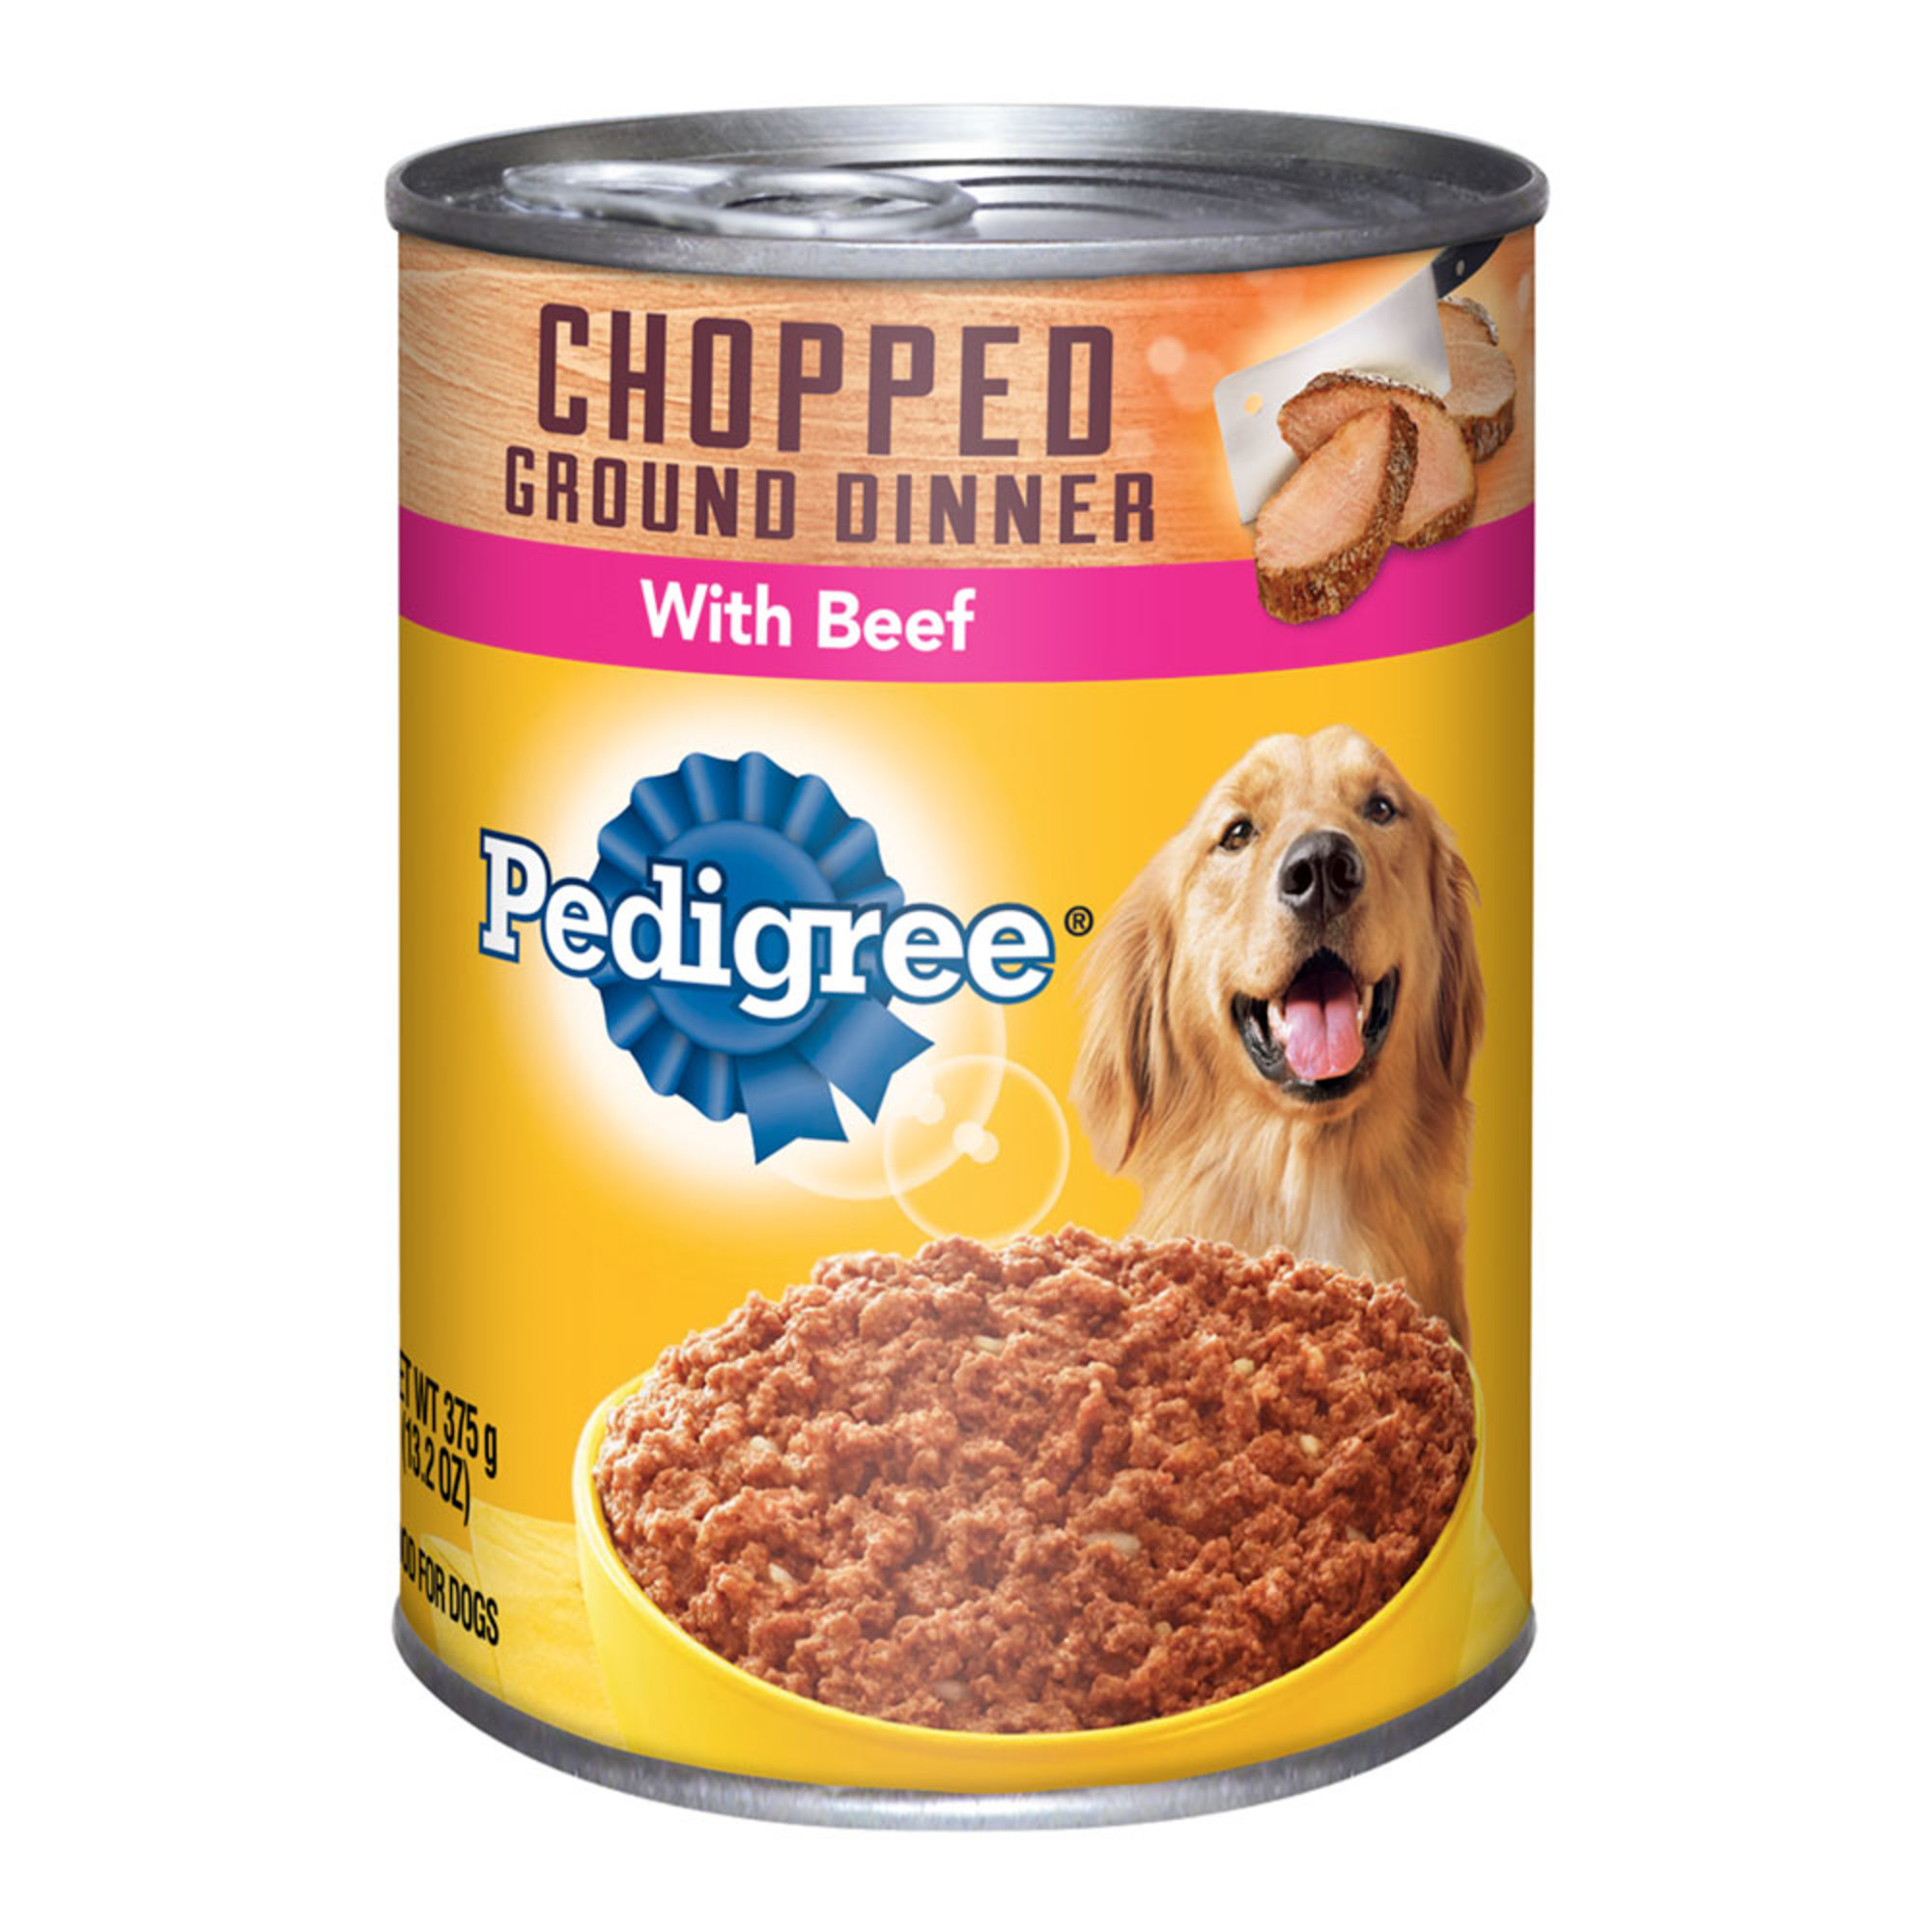 Pedigree Chopped Ground Dinner With Beef Wet Dog Food, 13.2 Oz.